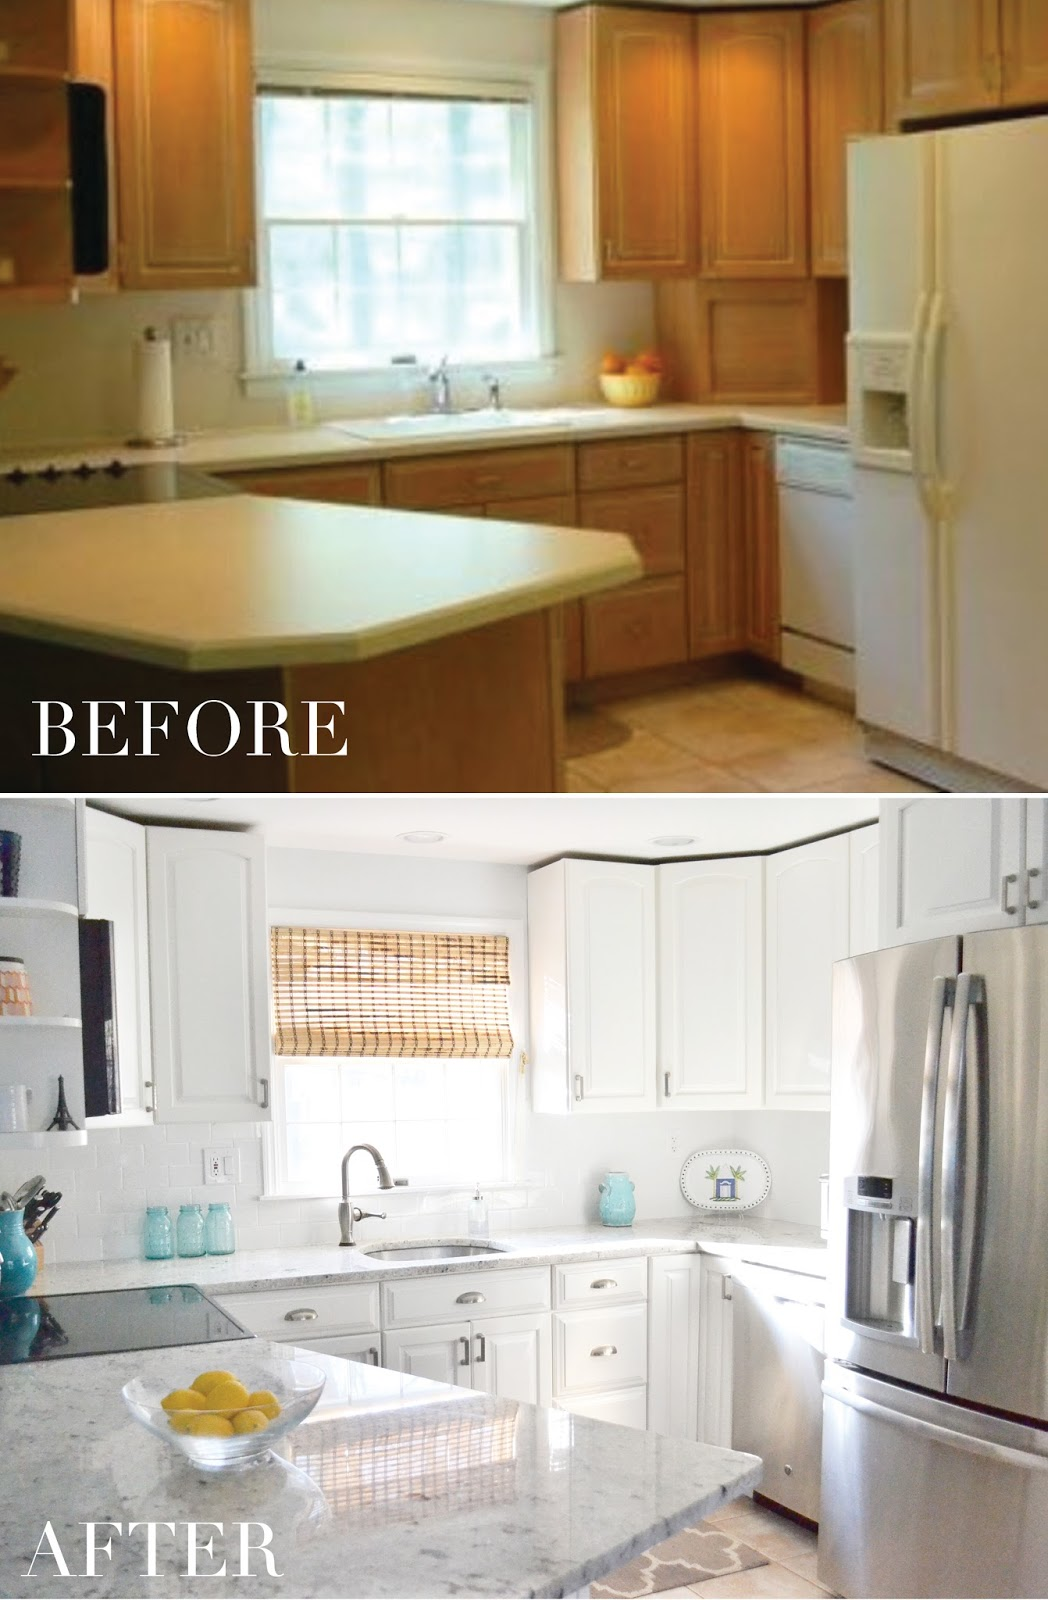 Pure Joy Home Our Kitchen Transformation From Dull To Bright